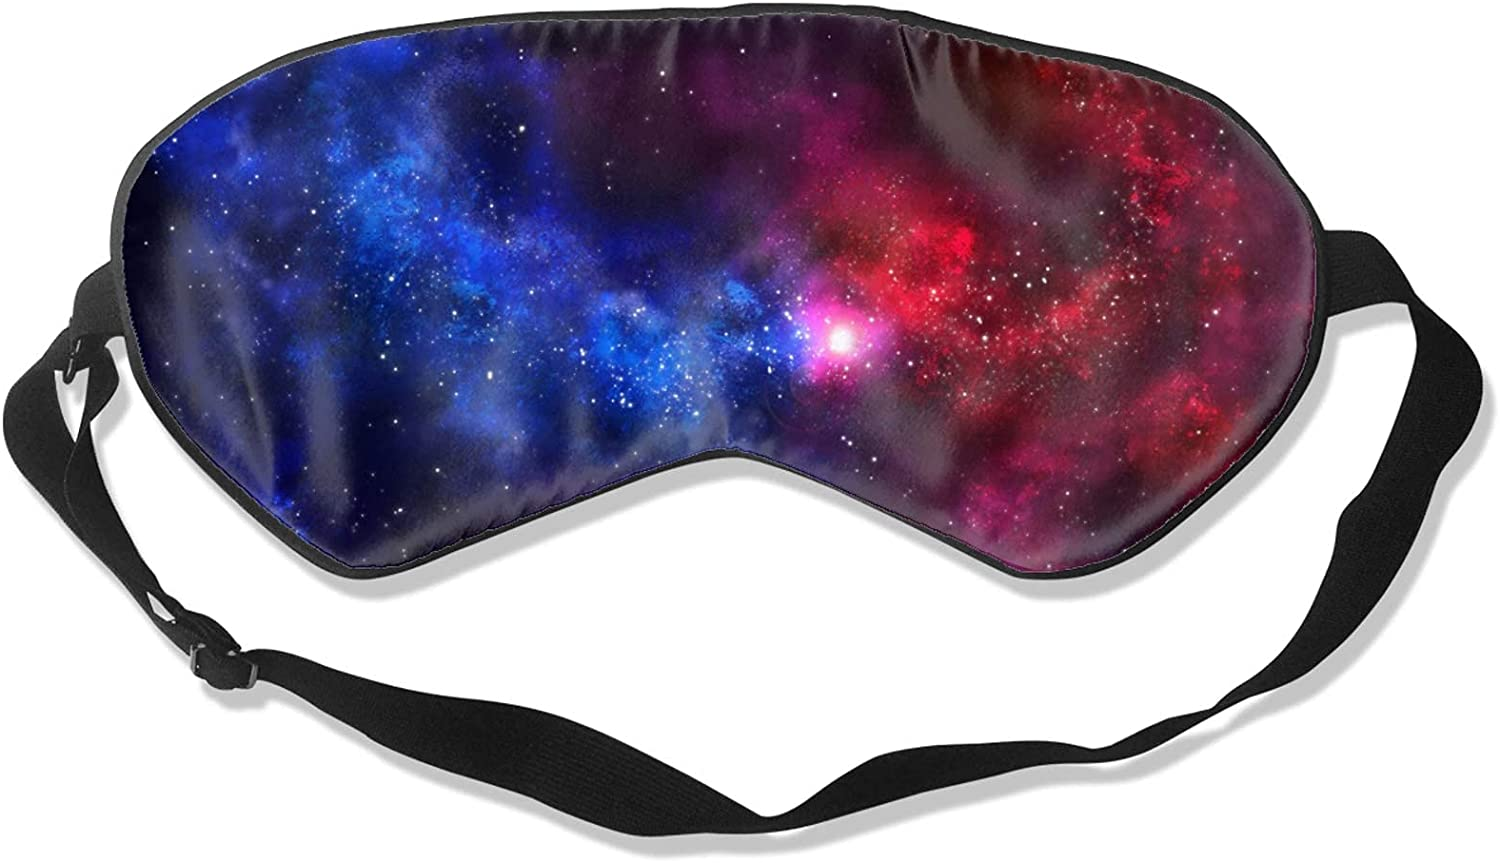 Red Blue New sales Starry Space Soft Block-Light Manufacturer OFFicial shop Cov Mask Sleeping Eye